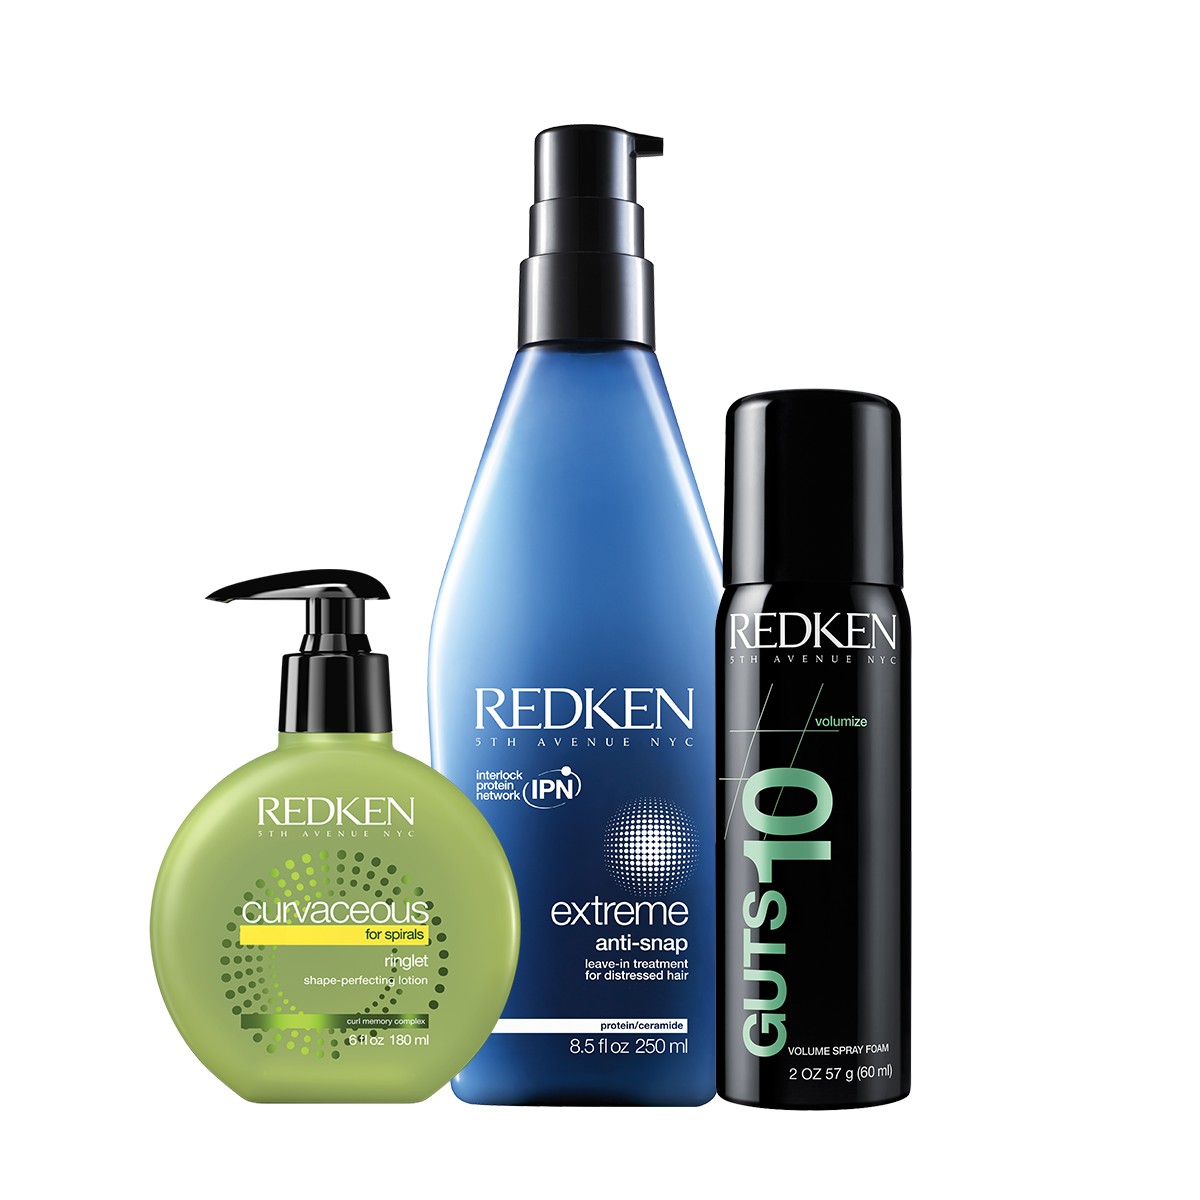 All Redken Regular-Sized Products 2 for $25 US ($30 CAN).  Valid only at participating salons through 2/28/2017, or while supplies last.